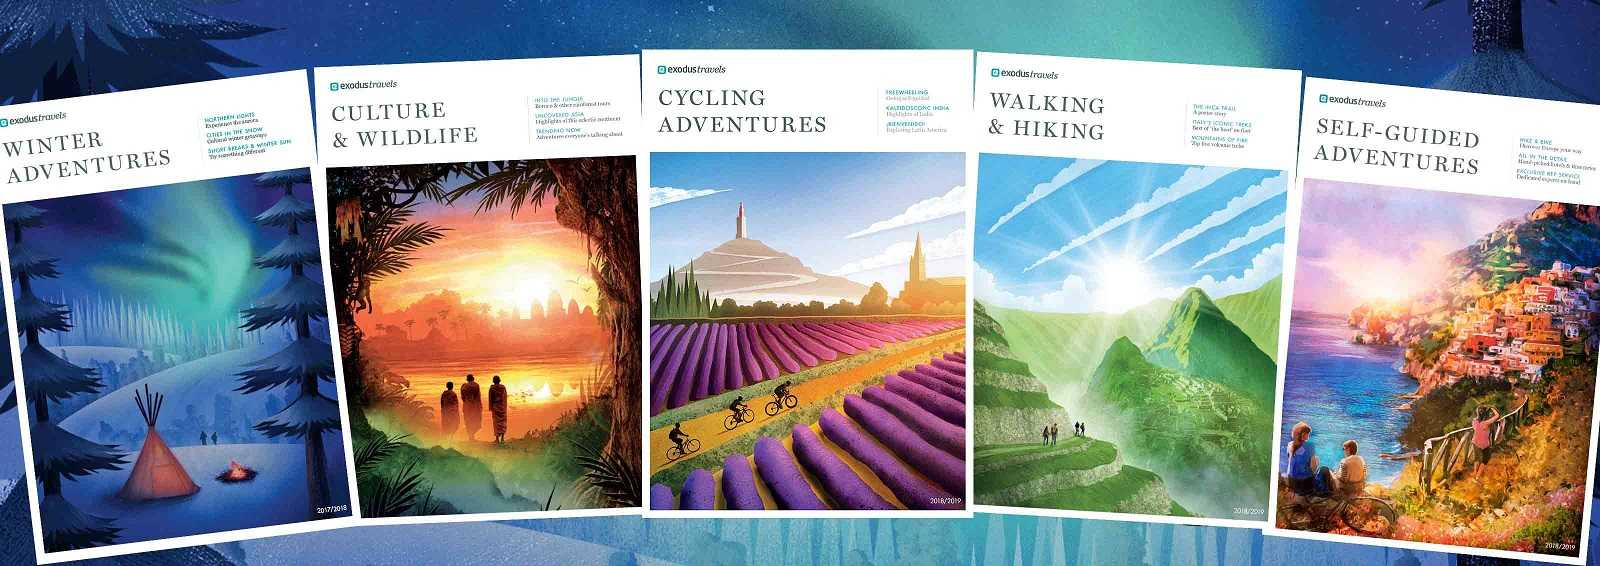 Order our Walking, Cycling, Self-Guided, and Responsible Wildlife Brochures